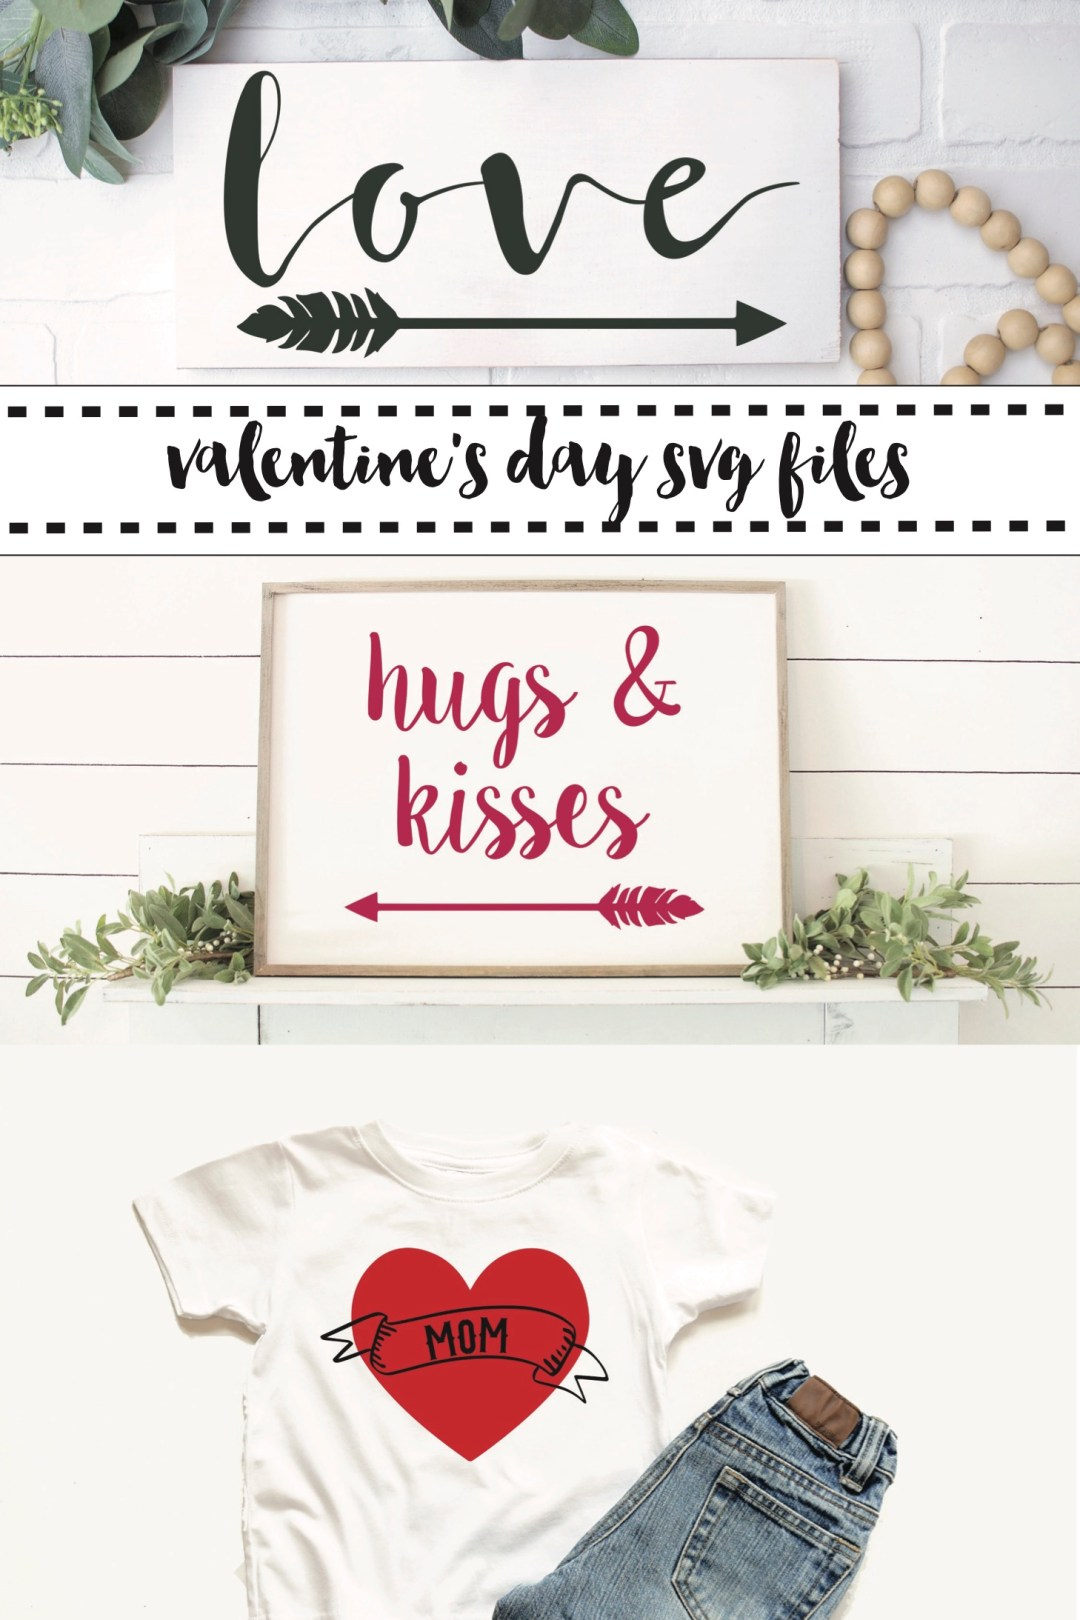 Farmhouse Style Signs Boy's Valentine's Day Shirt